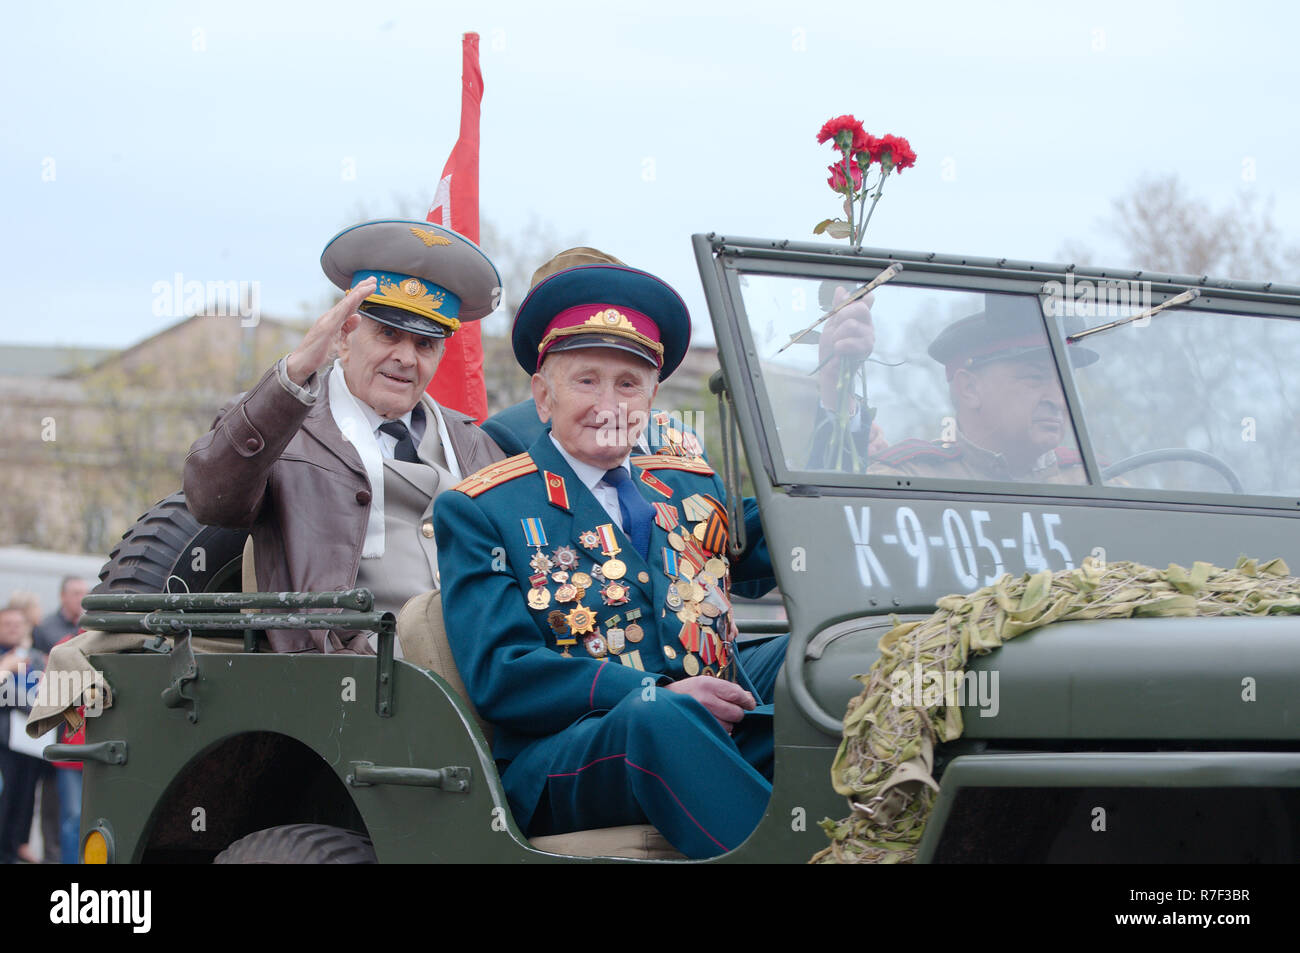 Parade commemorating the liberation of Odessa from the Nazis, Odessa, Ukraine - Stock Image